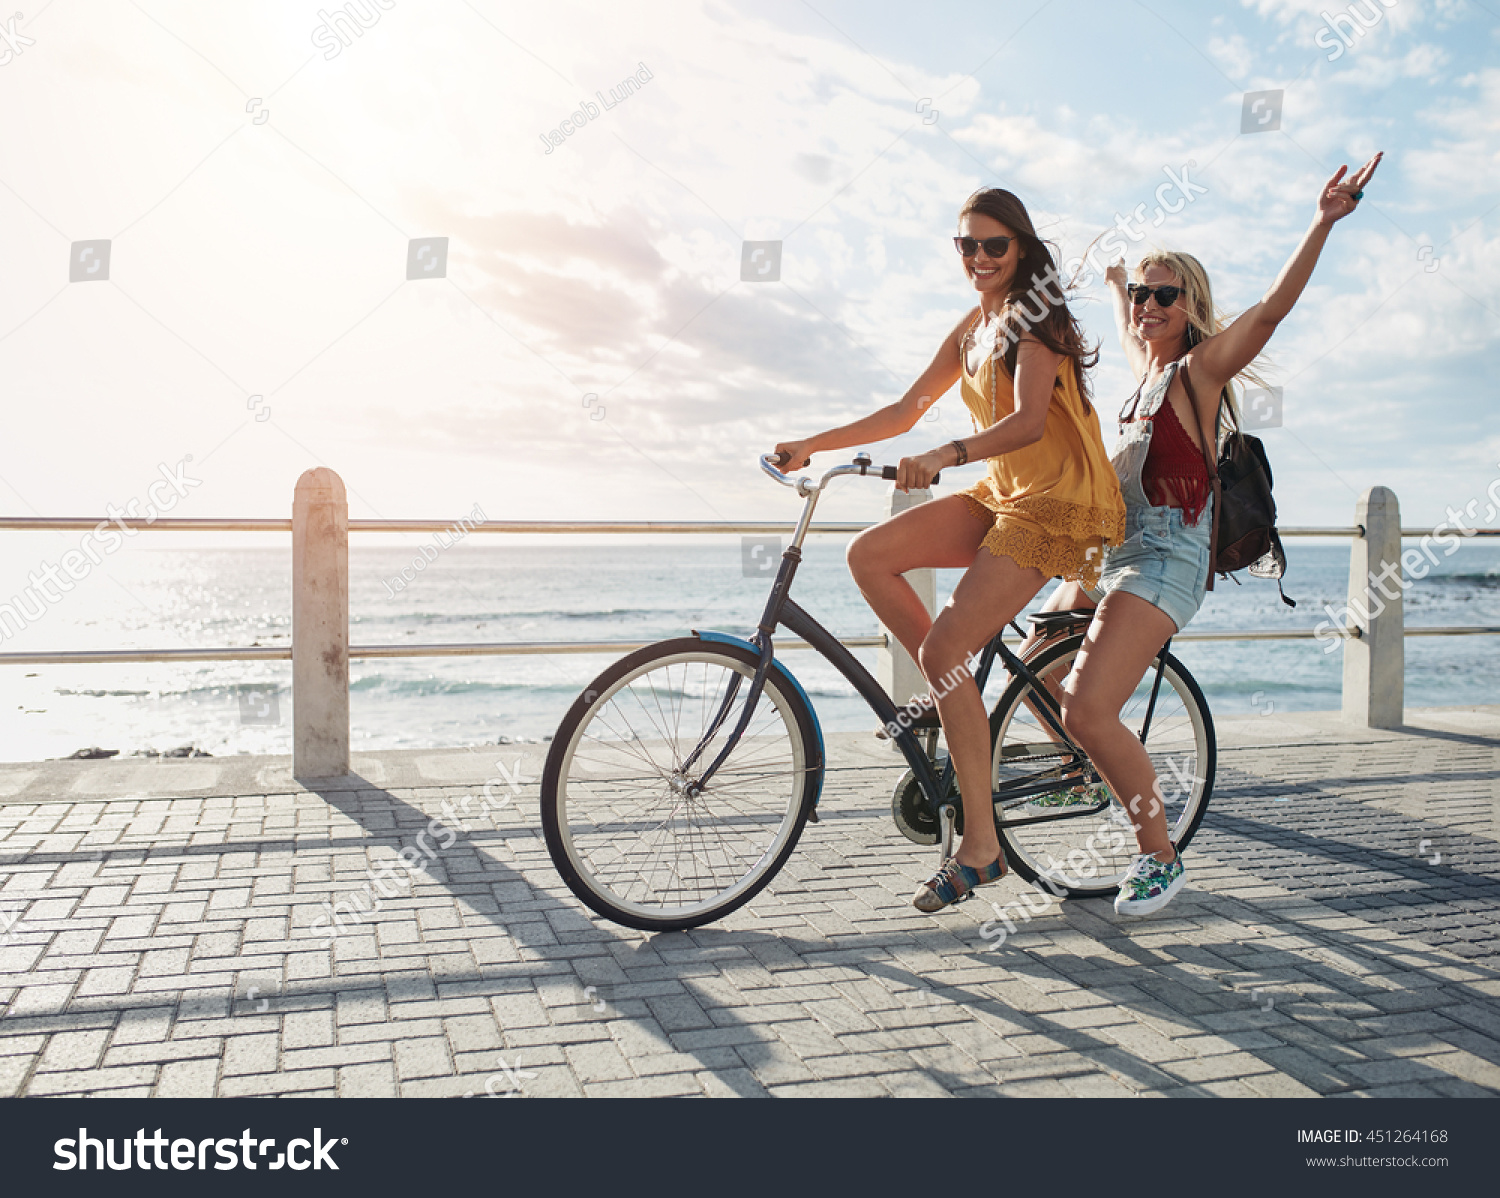 Joyful young women riding a bicycle together. Best friends having fun on a bike at the seaside promenade.